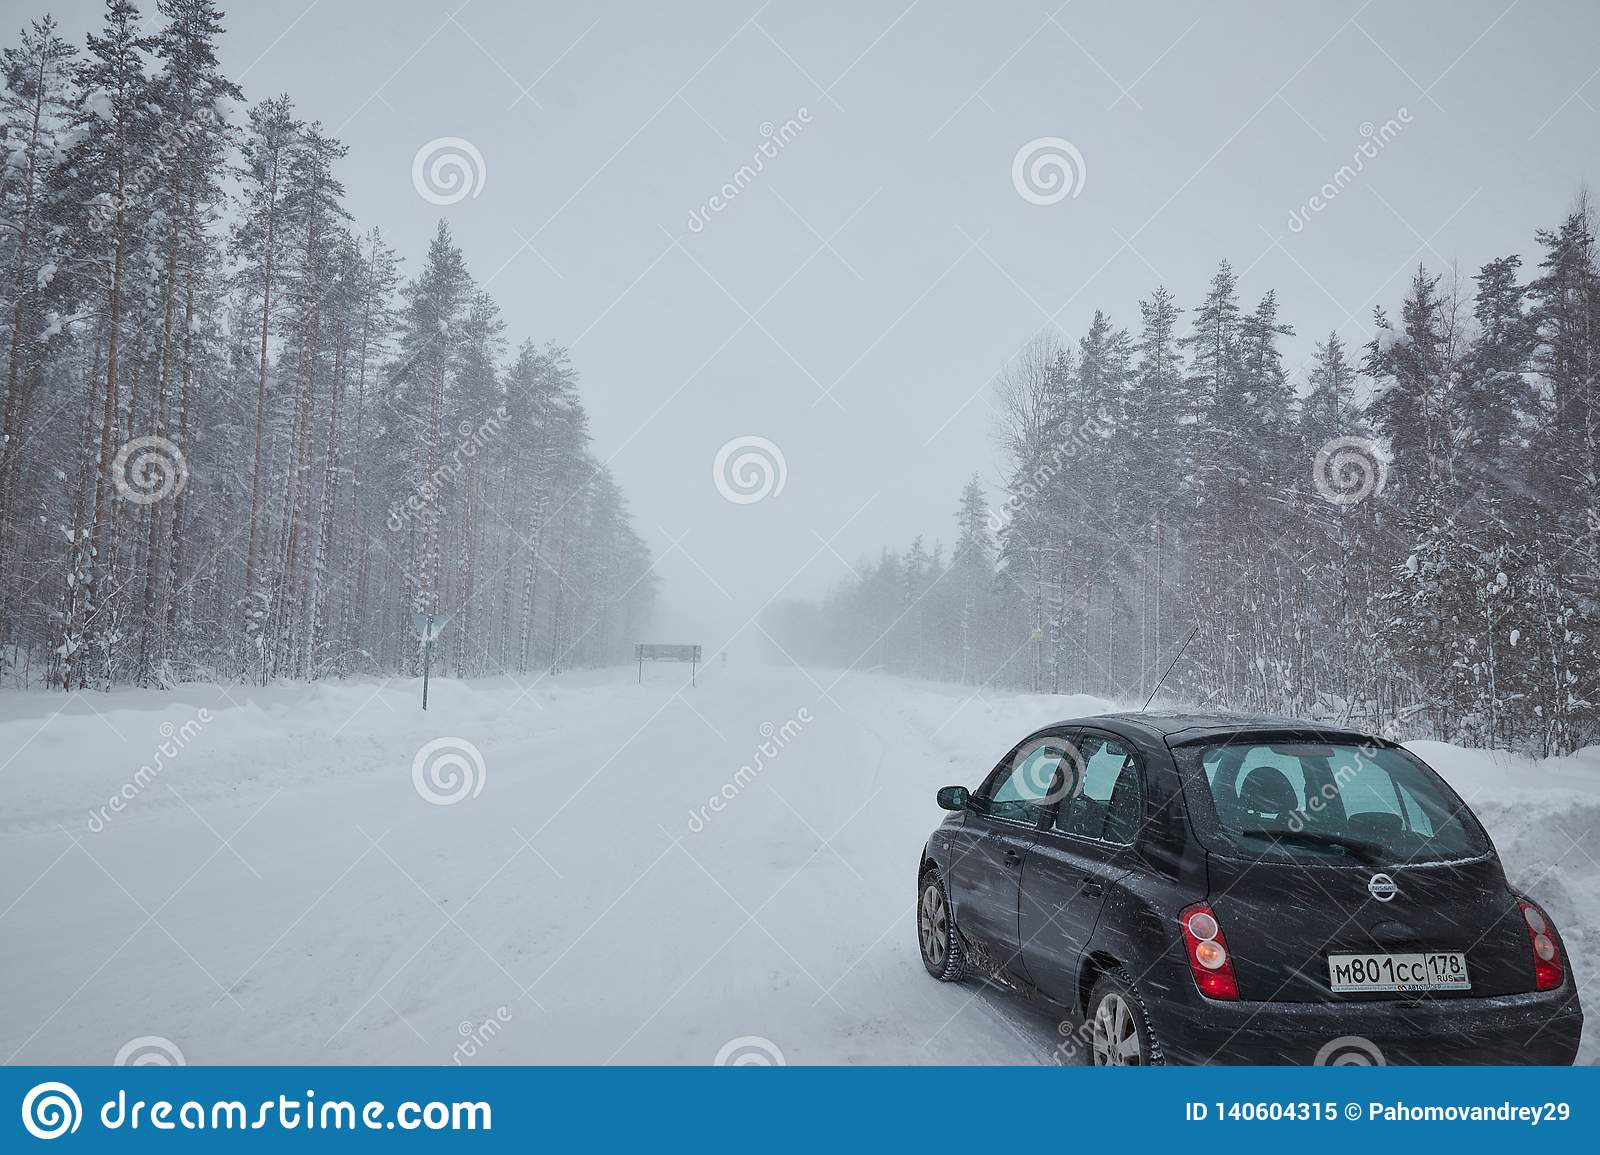 Russia. Saint-Petersburg. suburban. January 2019. heavy snow precipitation. car with snow